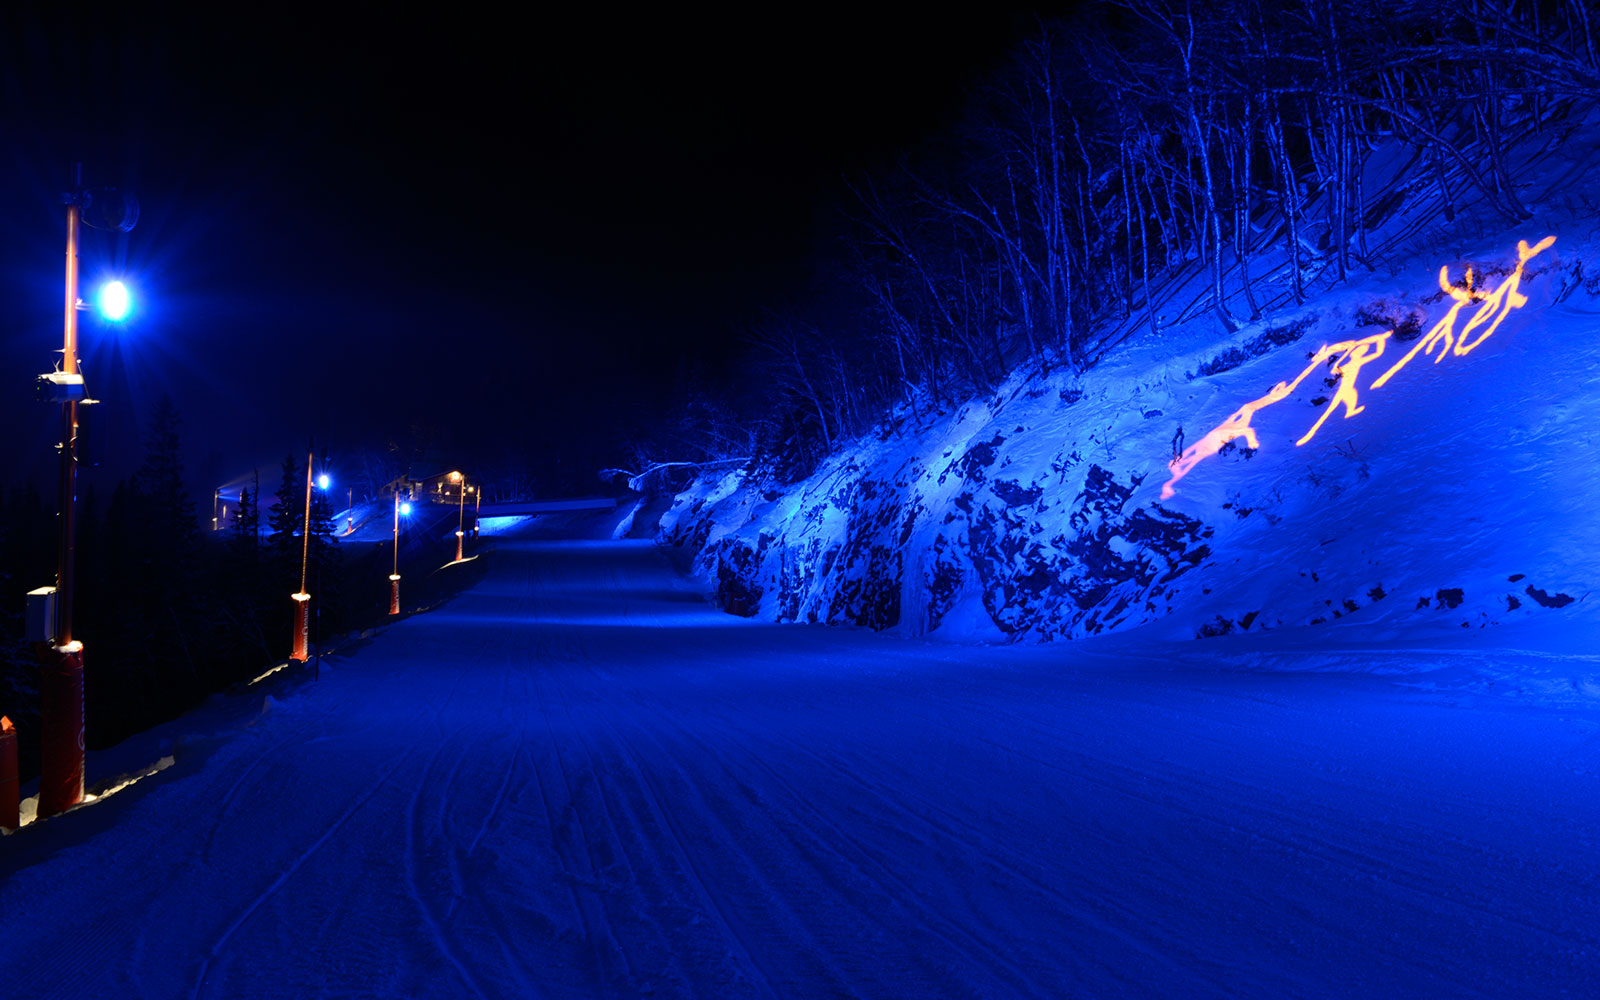 <h1>Åre skiing slope</h1><h4>Lighting designer Kai Piippo and SkiStar Åre have created a mystical fairy world that won Lighting Award 2013.</h4>